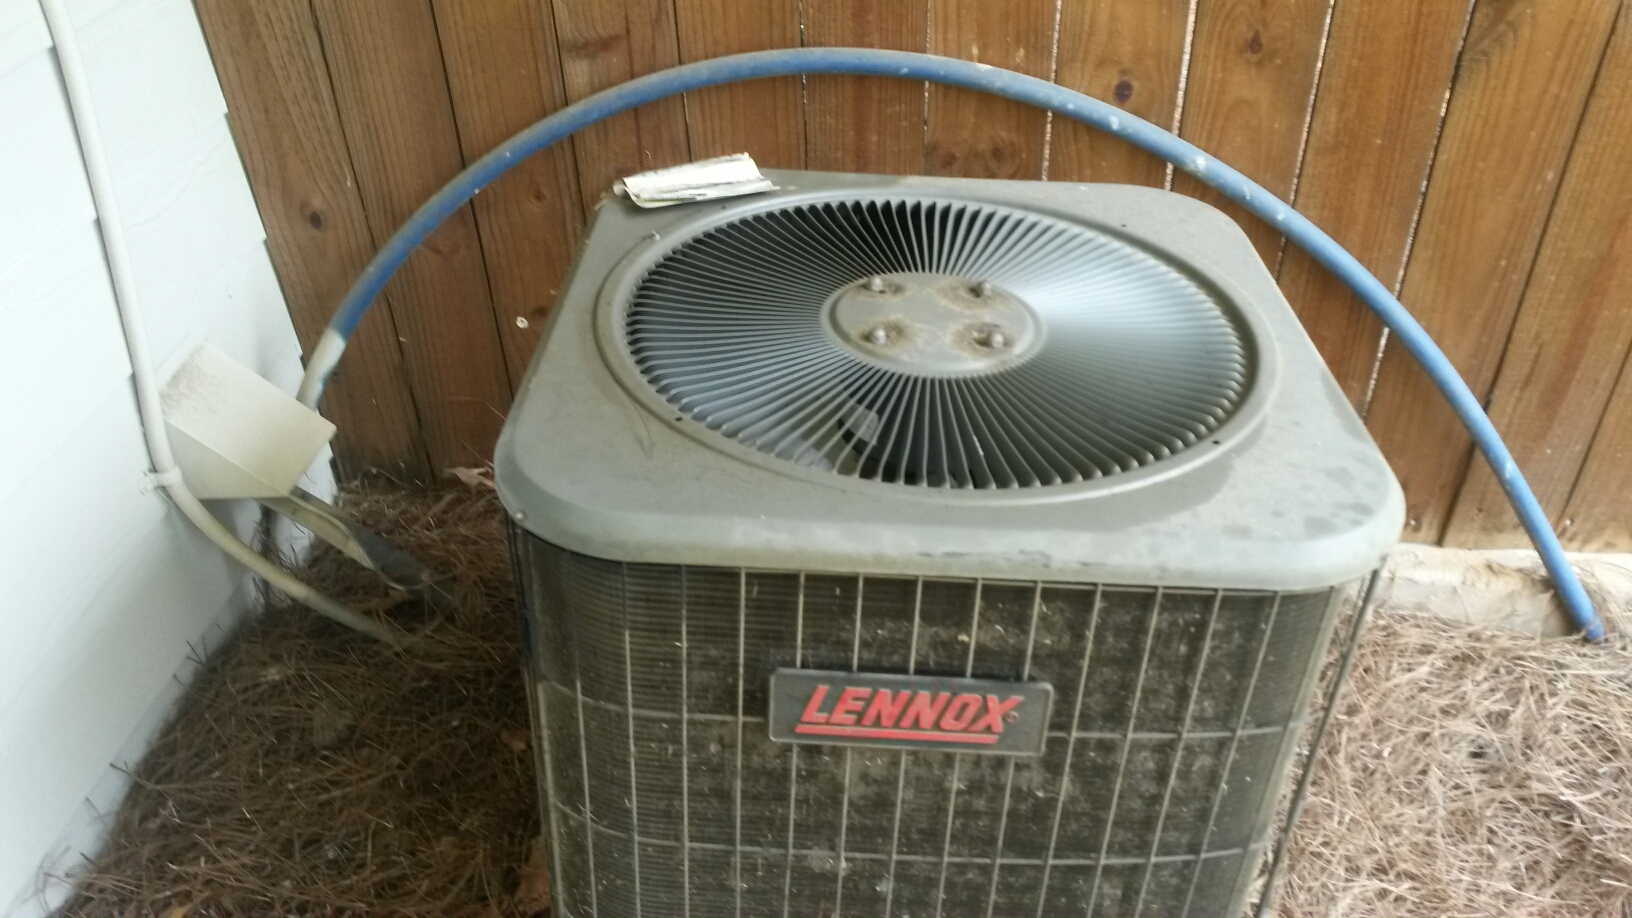 Mableton, GA - Lennox AC failure  We will install a new trane xr 14. 14 seer with a new evaporator